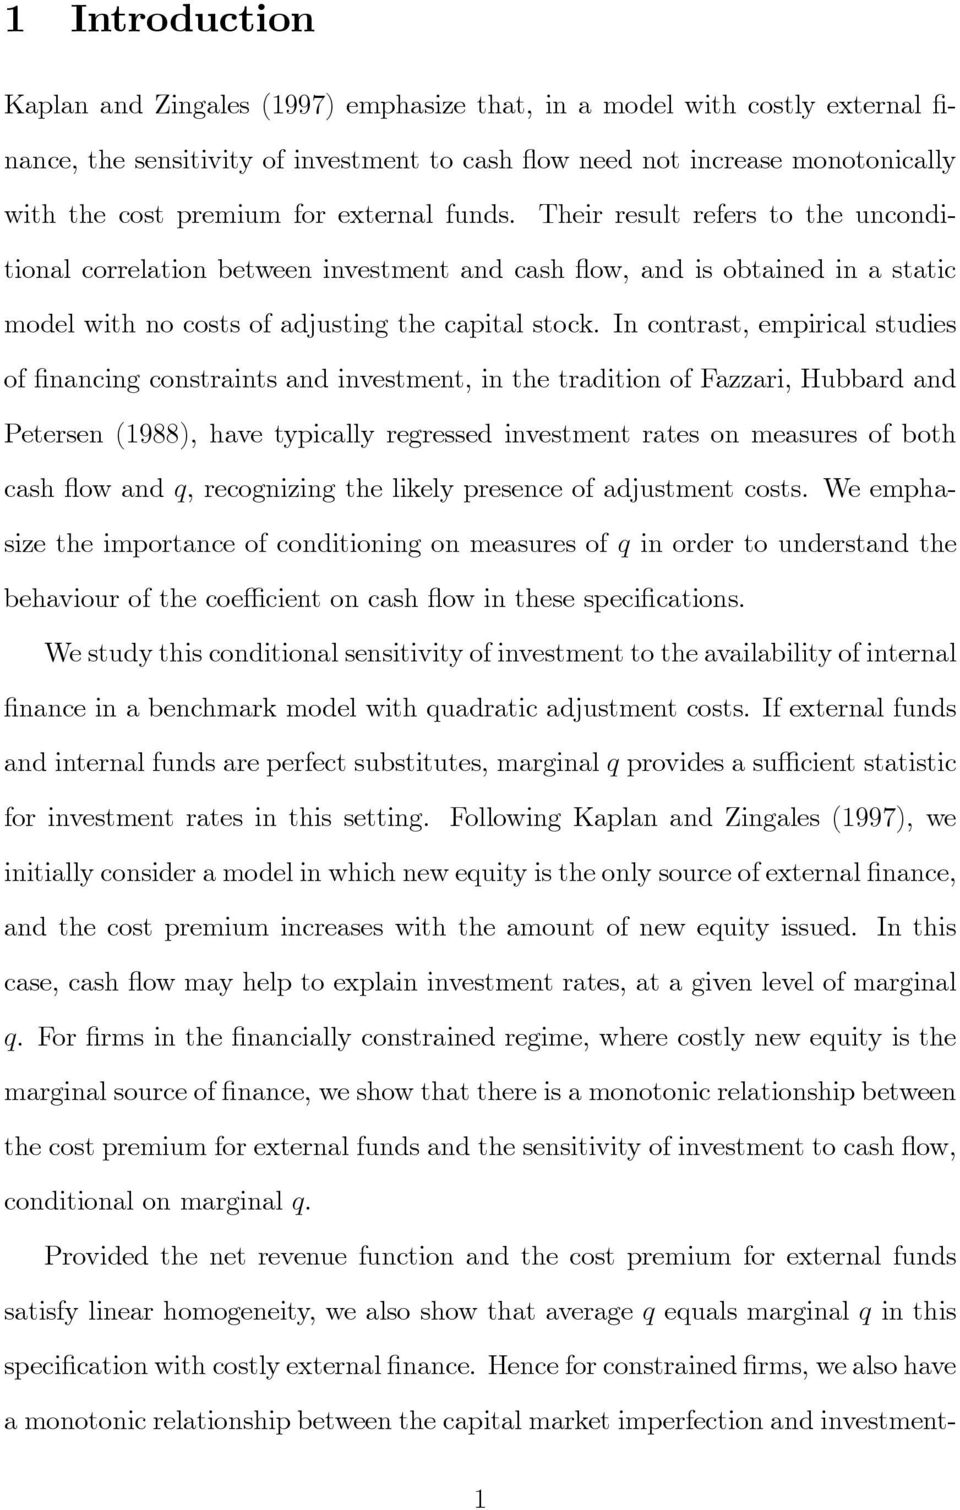 In contrast, empirical studies of nancing constraints and investment, in the tradition of Fazzari, Hubbard and Petersen (1988), have typically regressed investment rates on measures of both cash ow